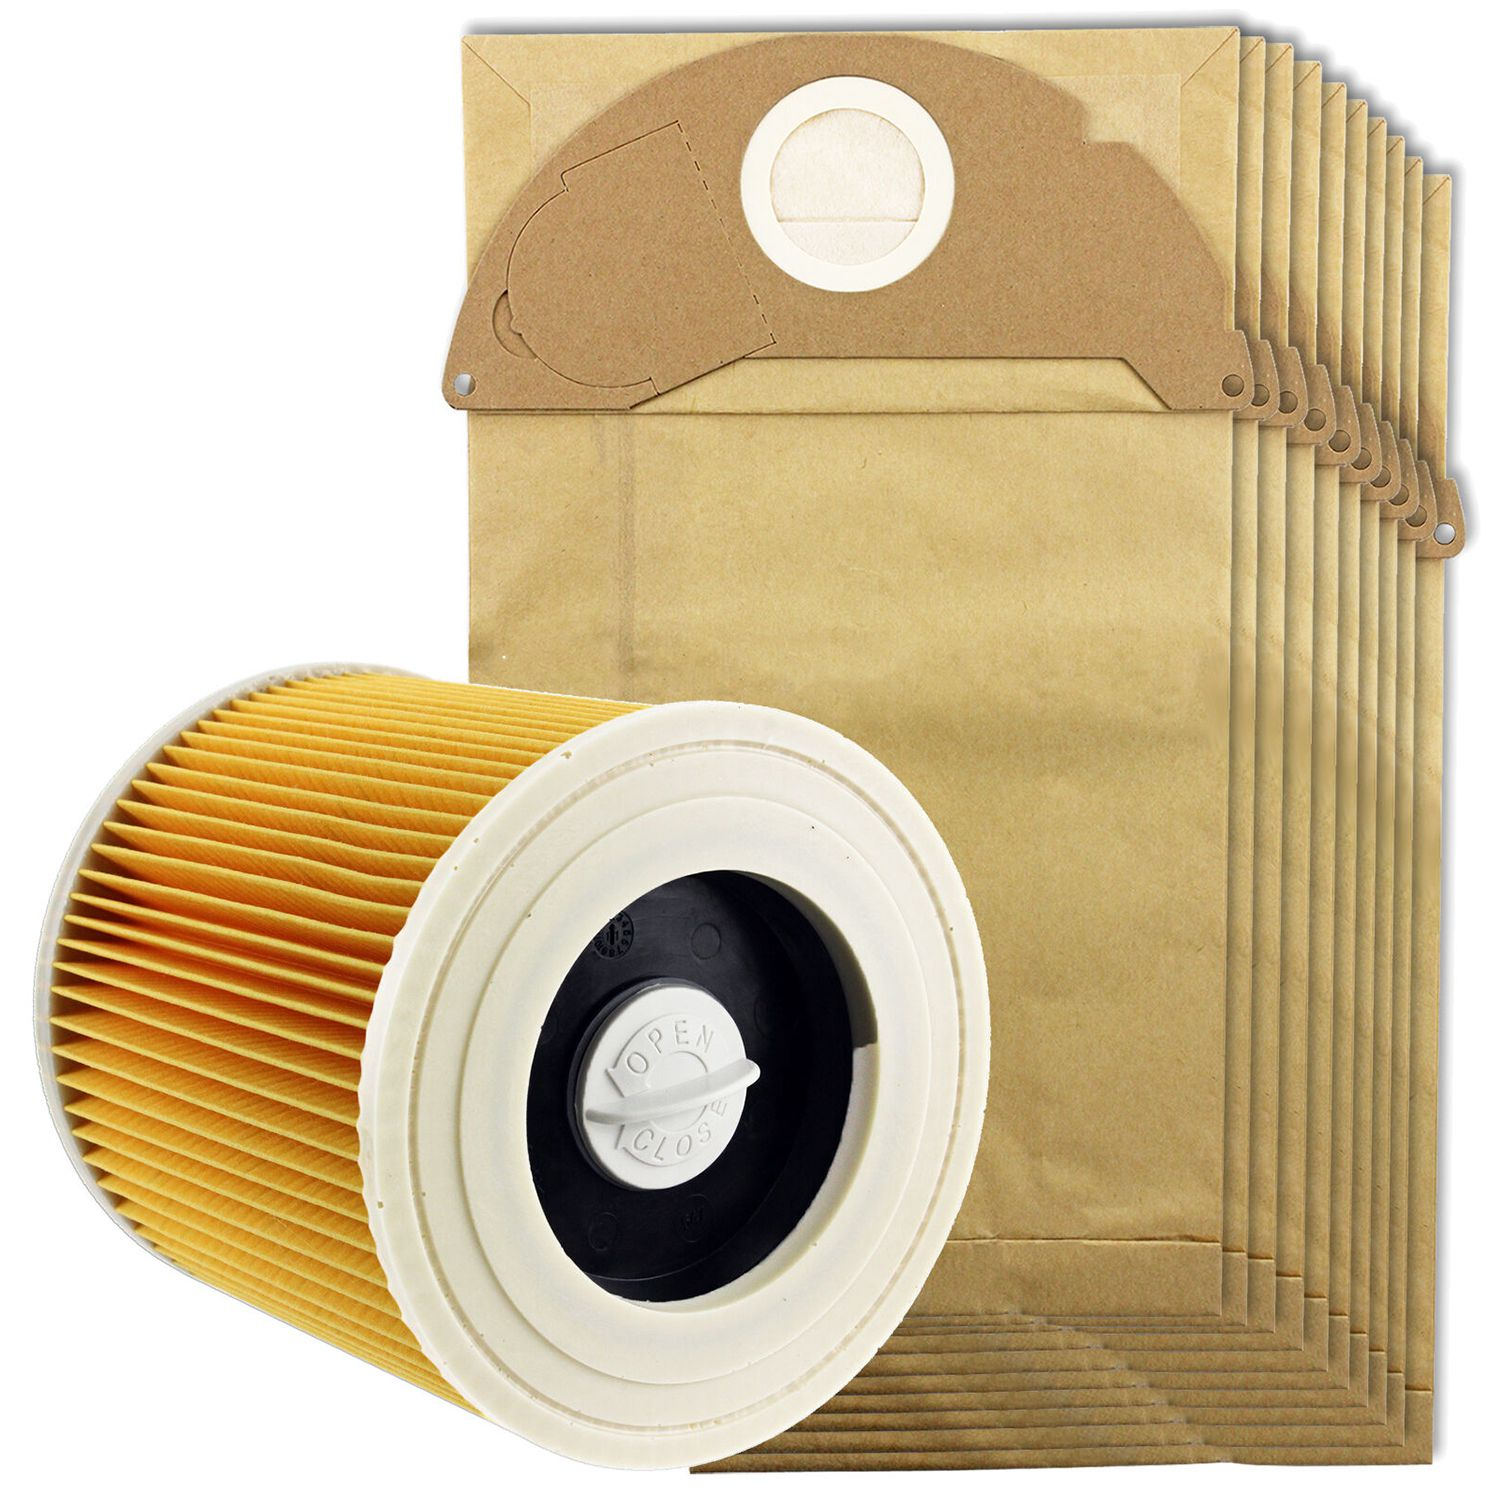 SANQ For Karcher Wet&Dry Wd2 Vacuum Cleaner Filter And 10x Dust BagsSANQ For Karcher Wet&Dry Wd2 Vacuum Cleaner Filter And 10x Dust Bags